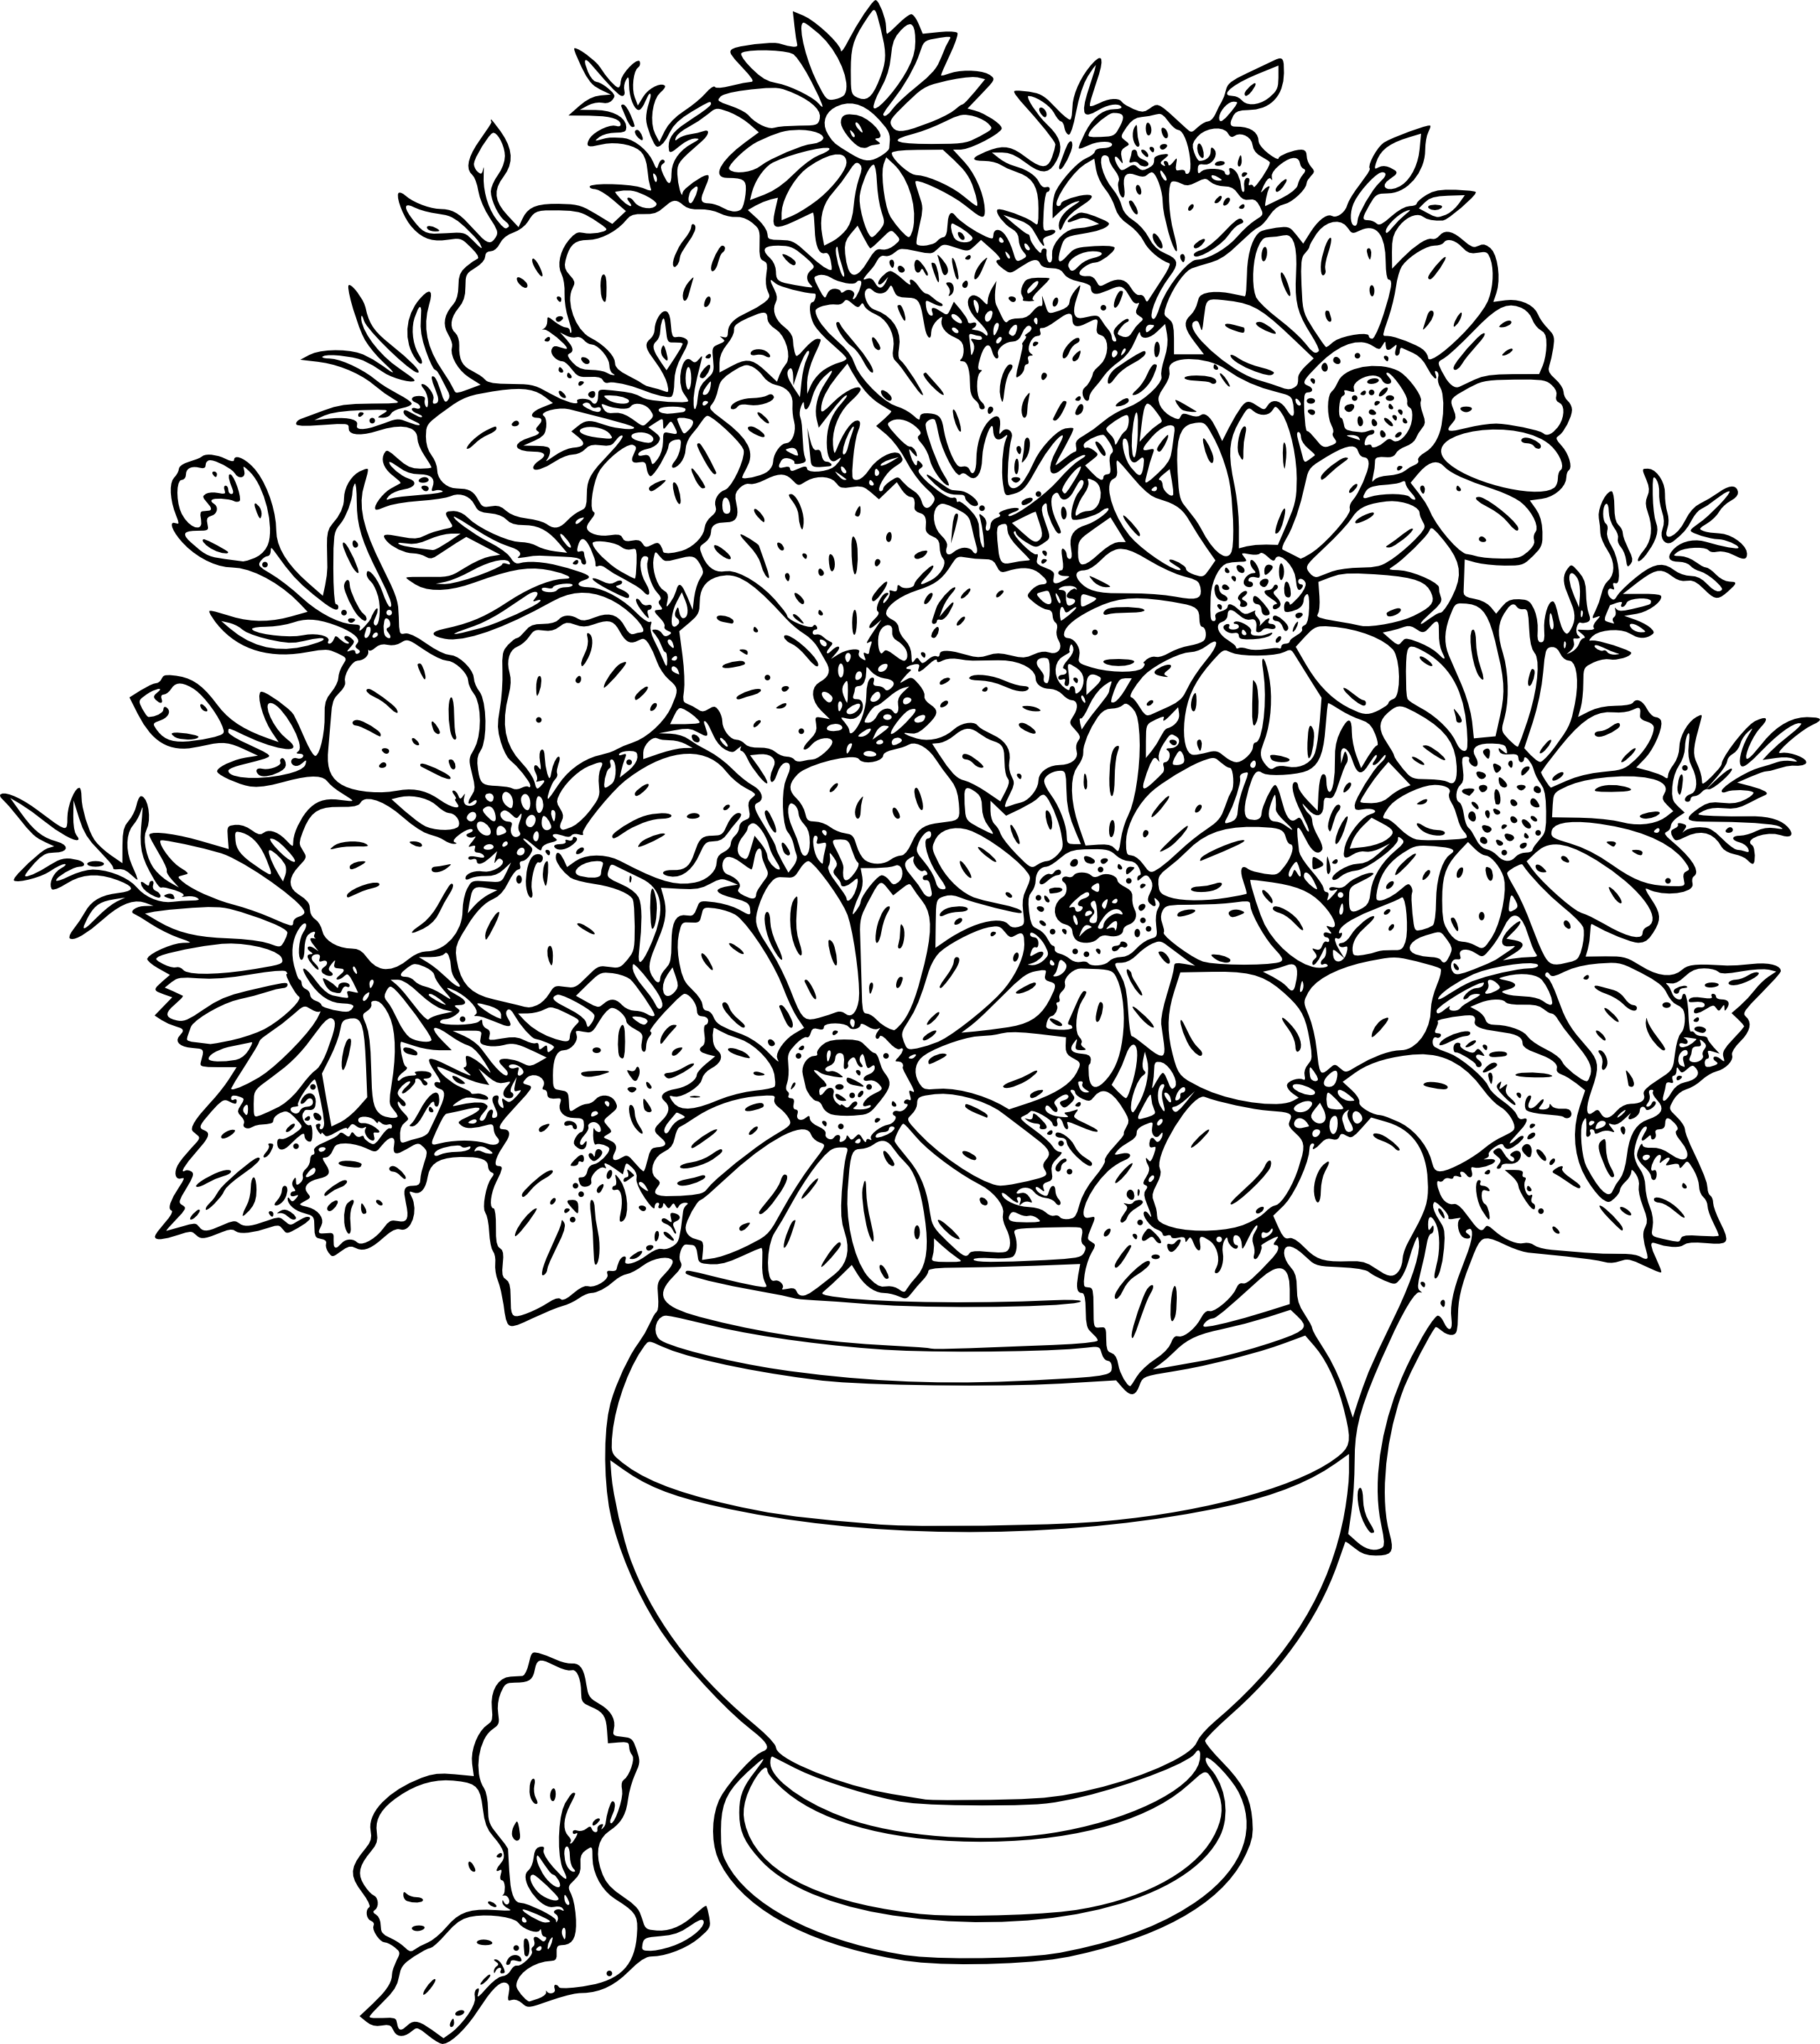 Flower Basket Line Drawing : Flowers line drawing images clipart best